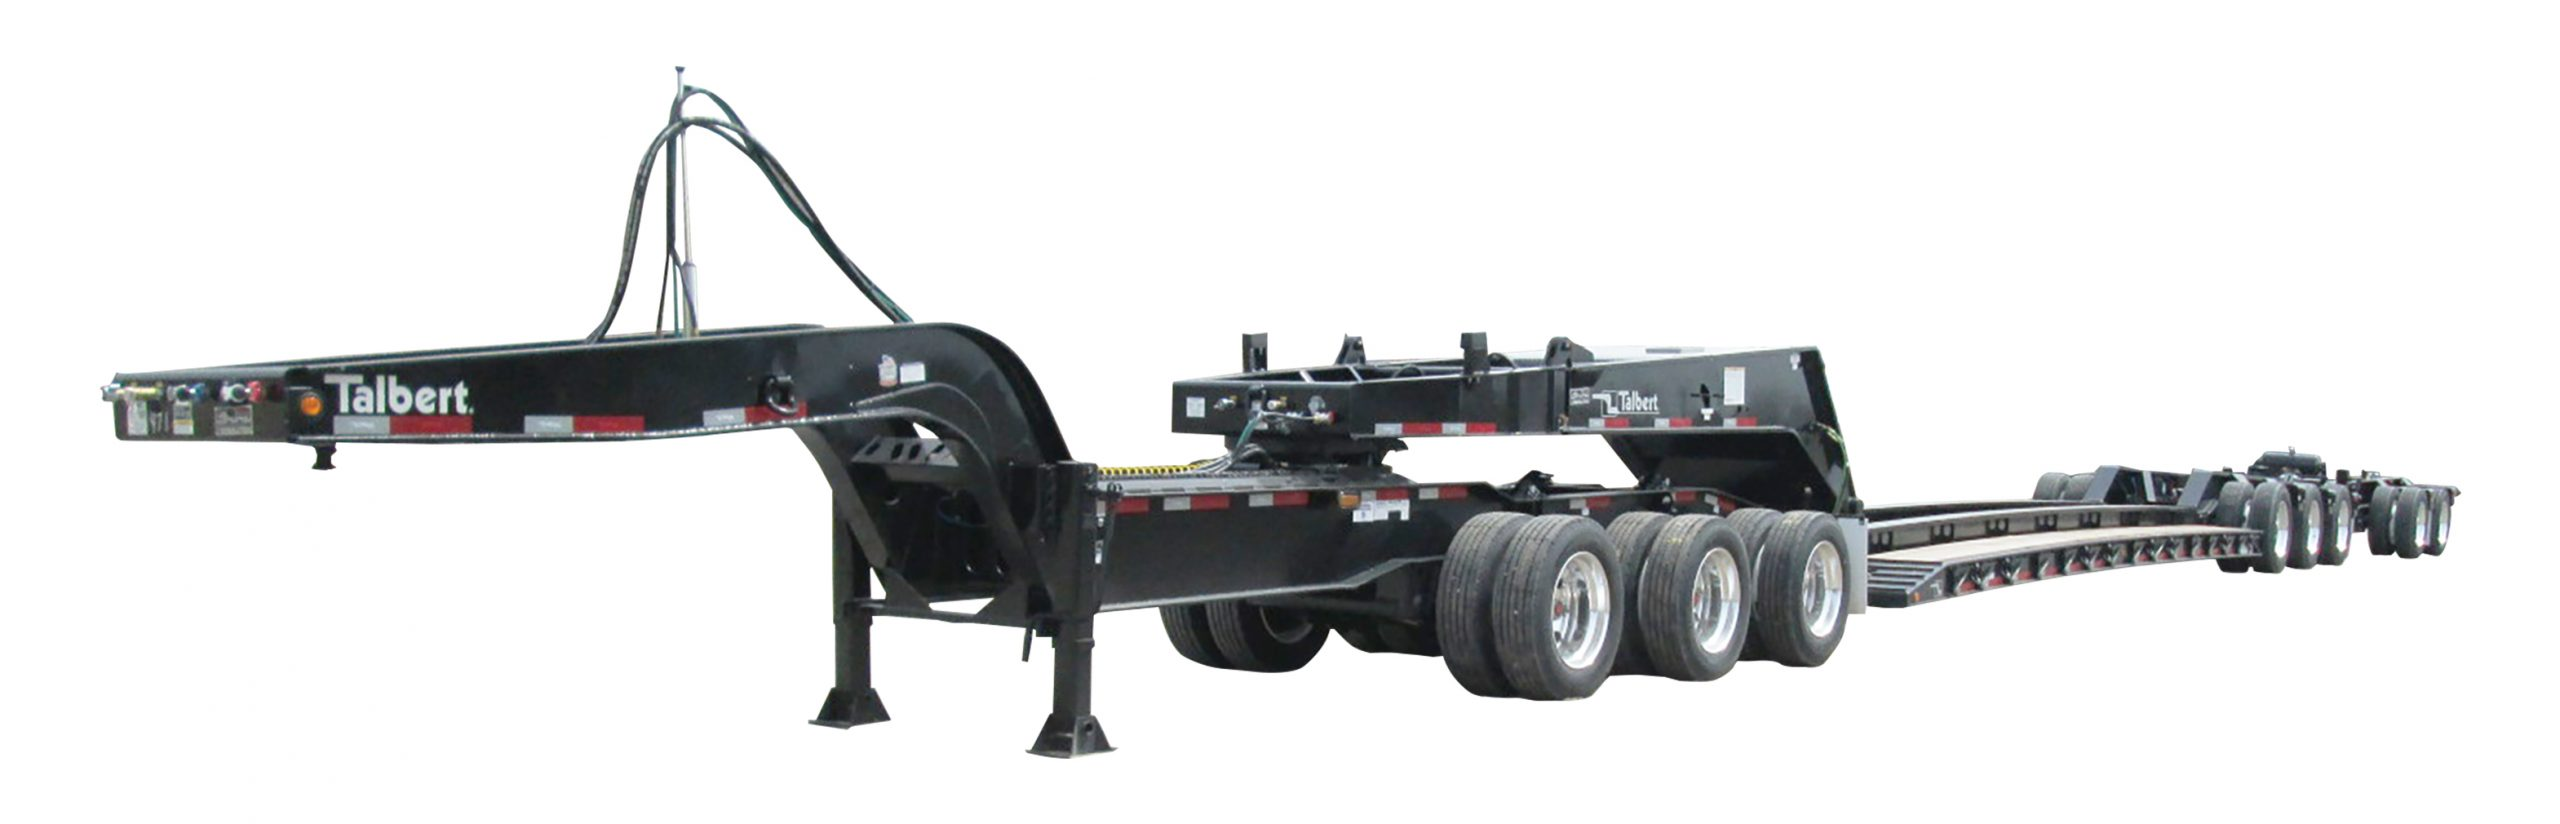 Talbert Manufacturing will feature a 3+3+2 configuration, raised-center version of the 65SA Modular Trailer, along with other custom-engineered innovations, at booth F5504 during CONEXPO-CON/AGG, March 10-14, 2020,in Las Vegas.